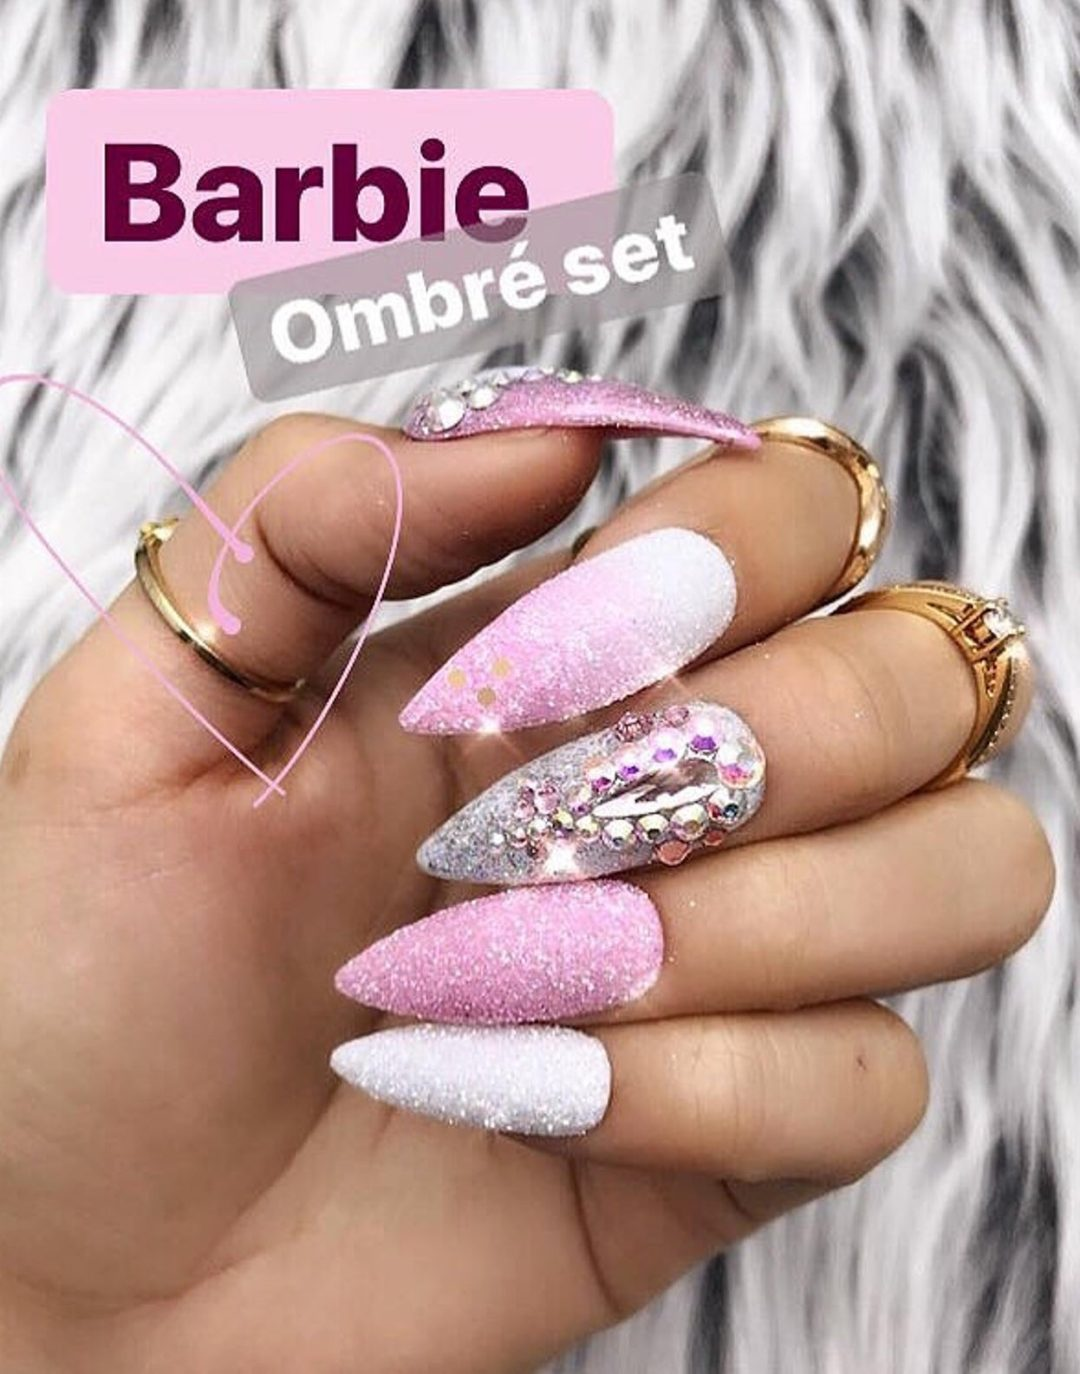 White and pink ombre nails with glitter and rhinestones